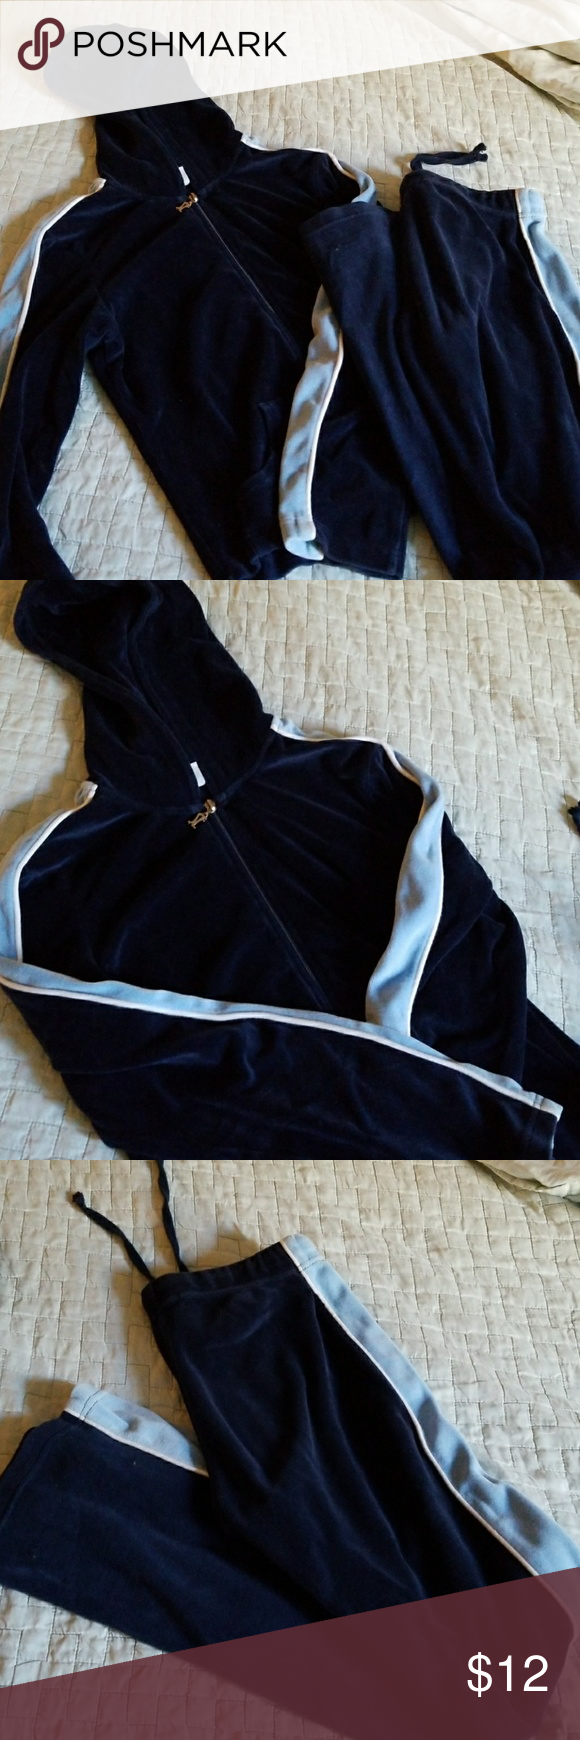 Jogging suit juniors large Jogging suit, Clothes design